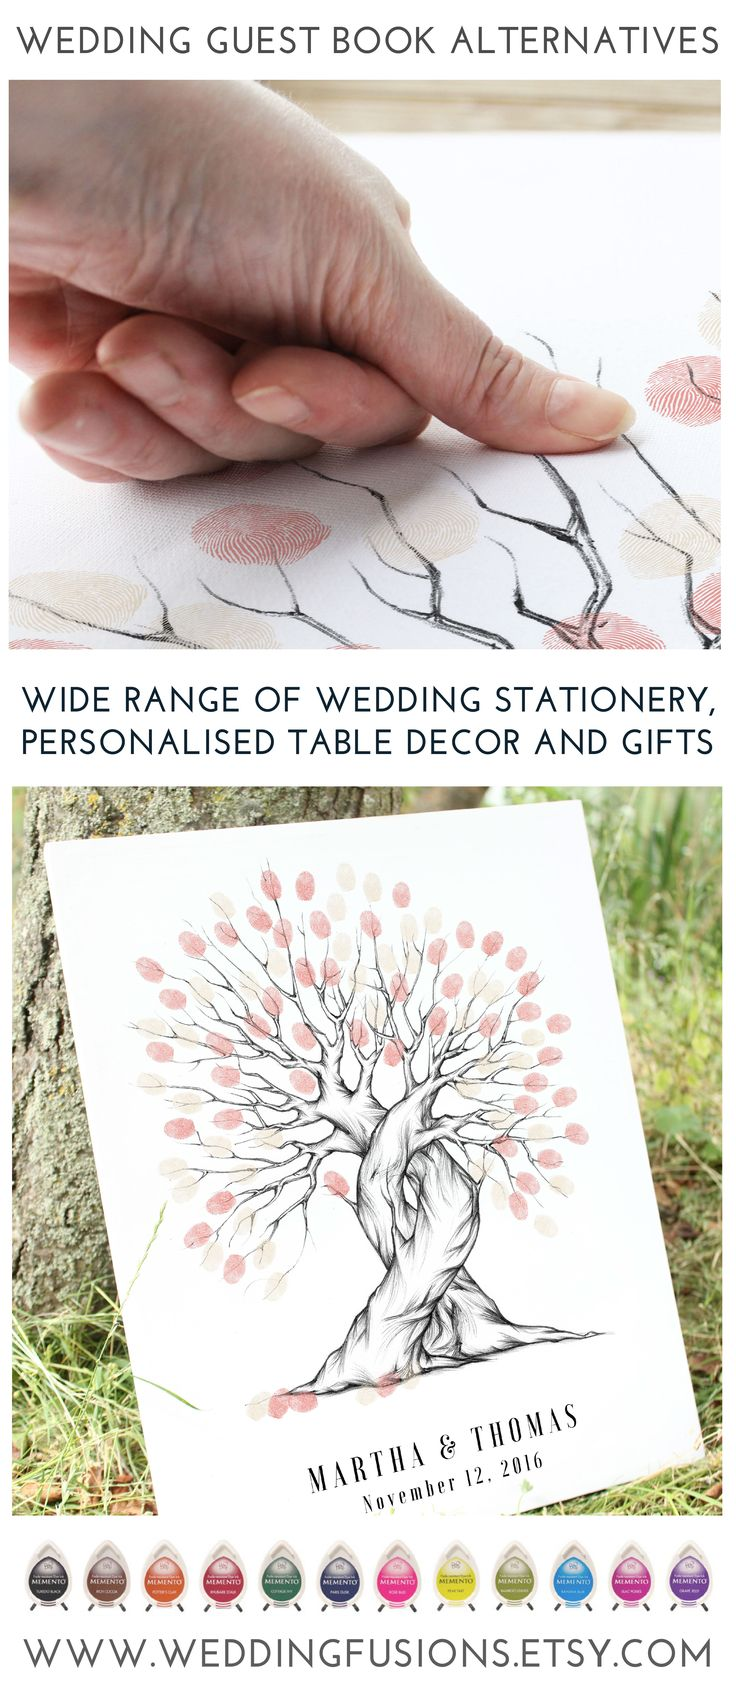 Wedding tree ideas. Fingerprint trees make fantastic alternative wedding guest books - and are beautiful wedding keepsakes.